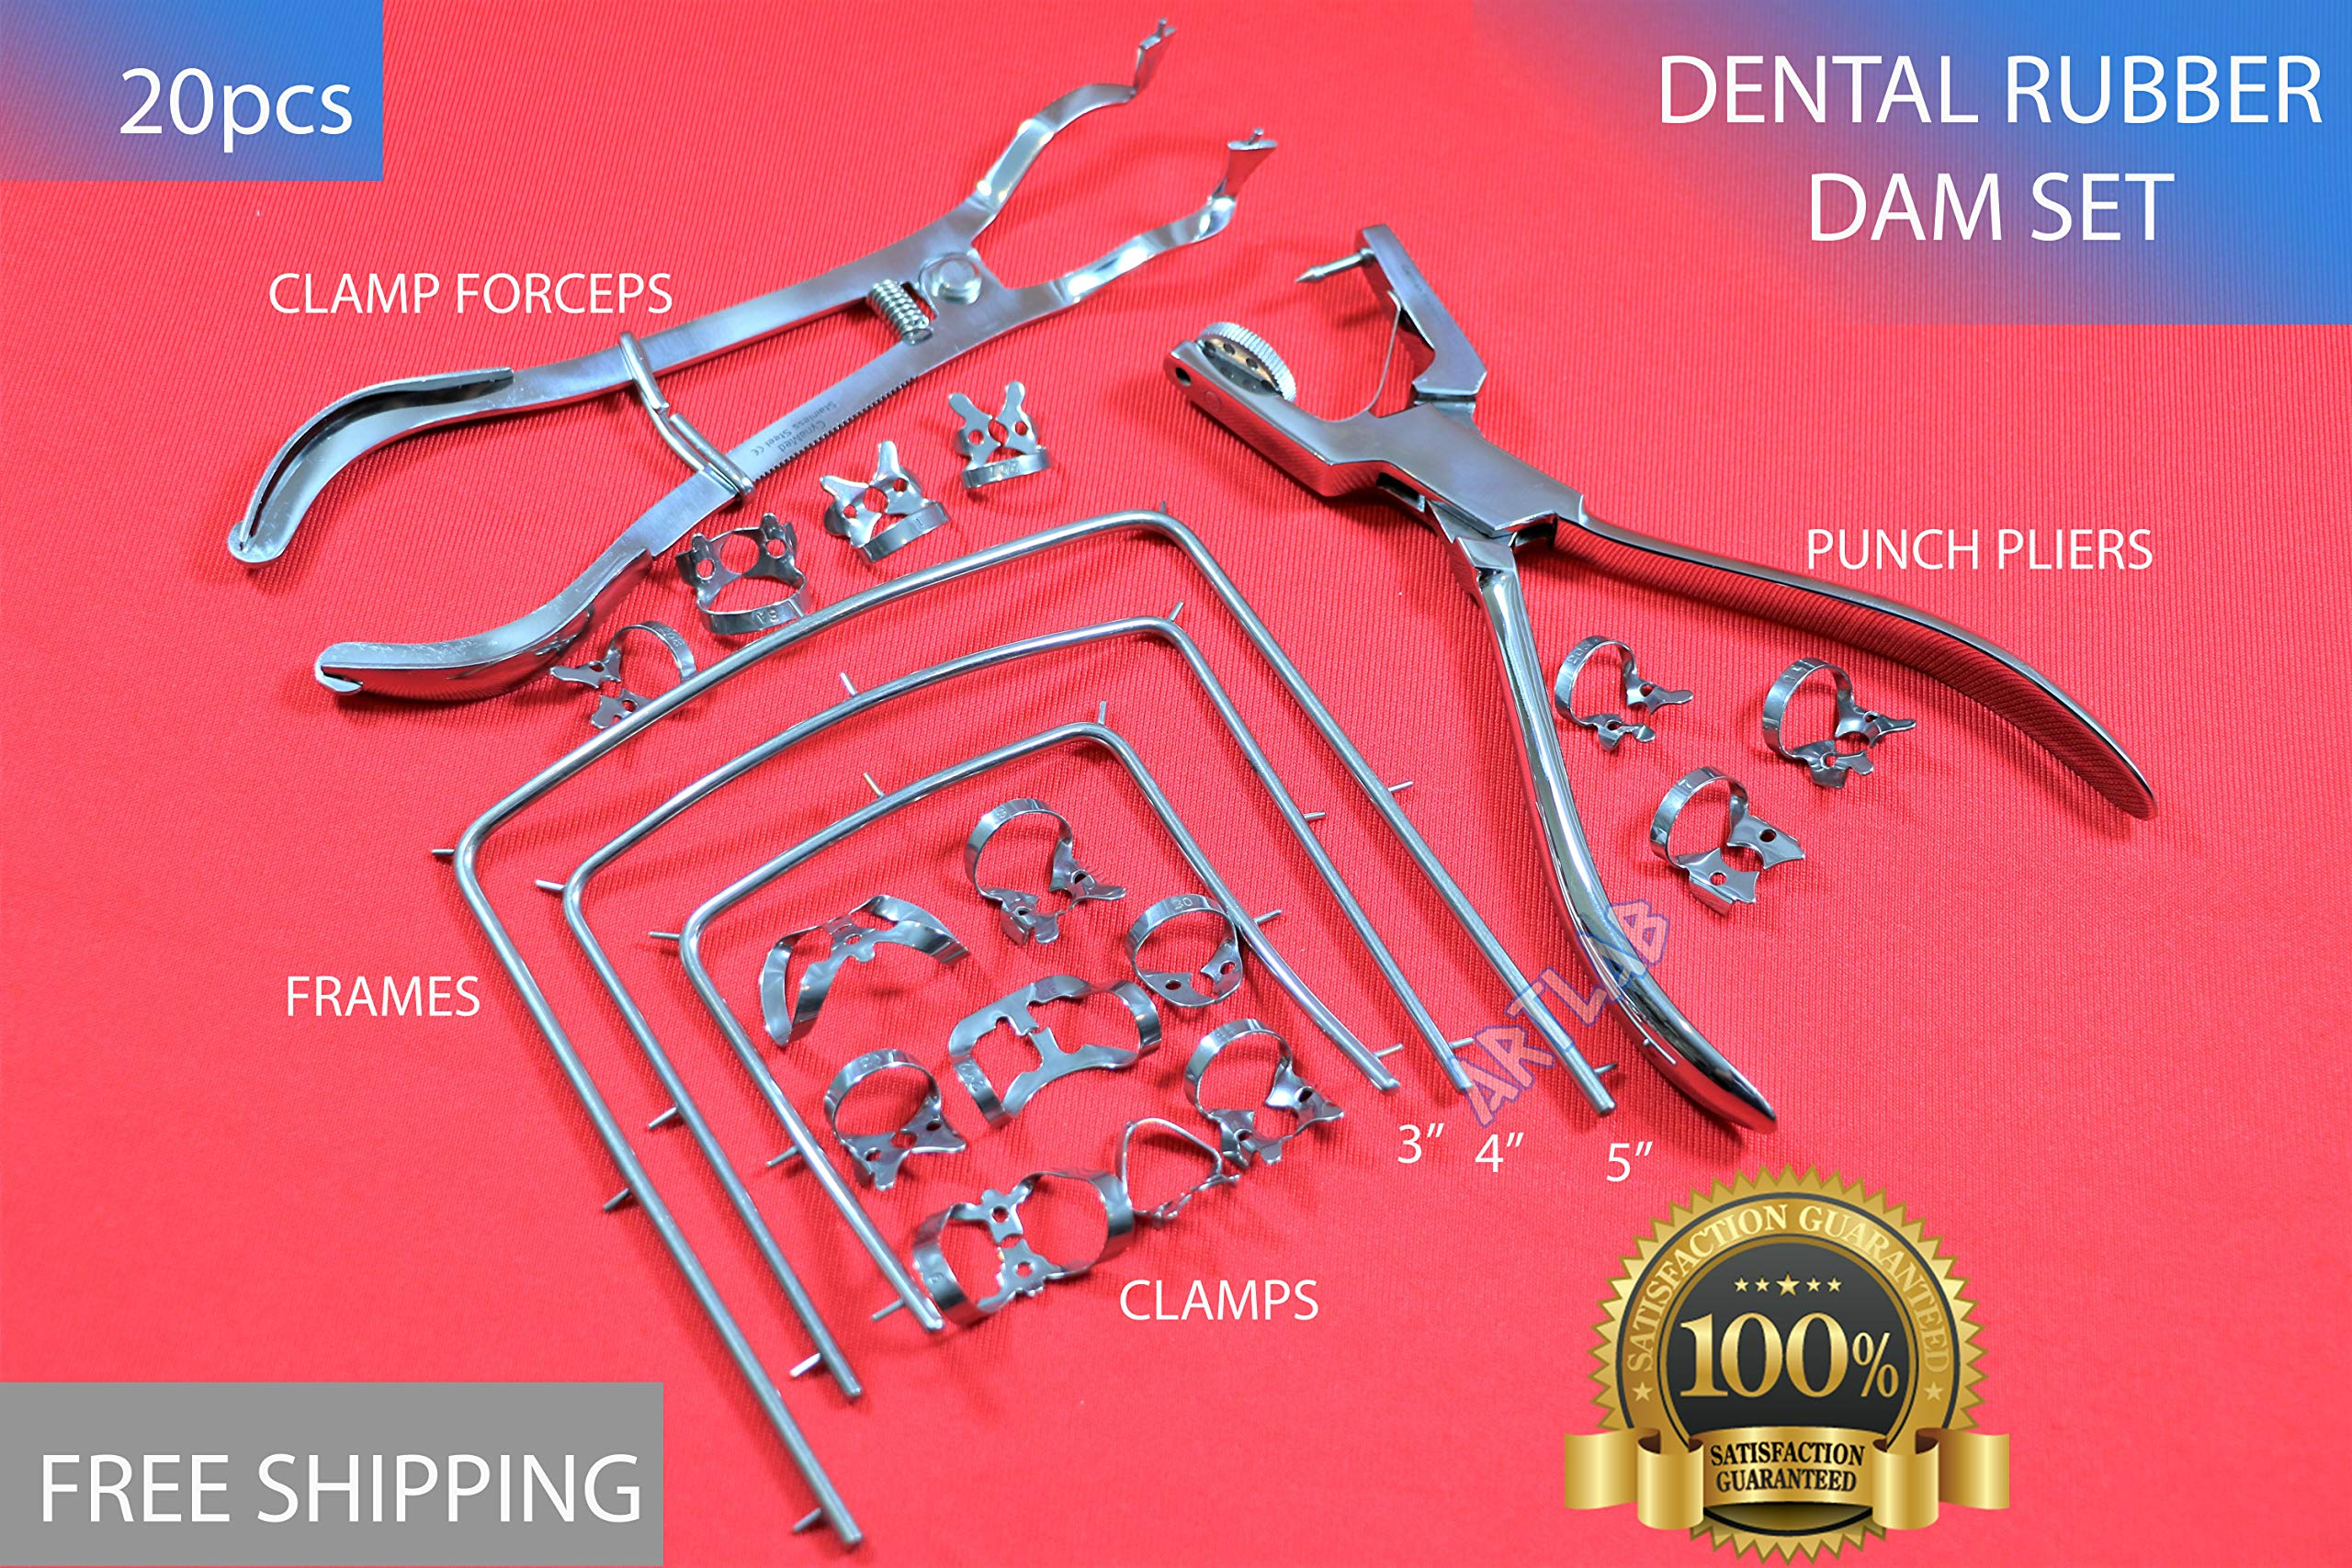 HIGH Grade Stainless Dental Rubber Dam Forceps Clamps + Punch Pliers + 15 Clamps + 3 Frames Sizes 3'',4'',5'' (CYNAMED)